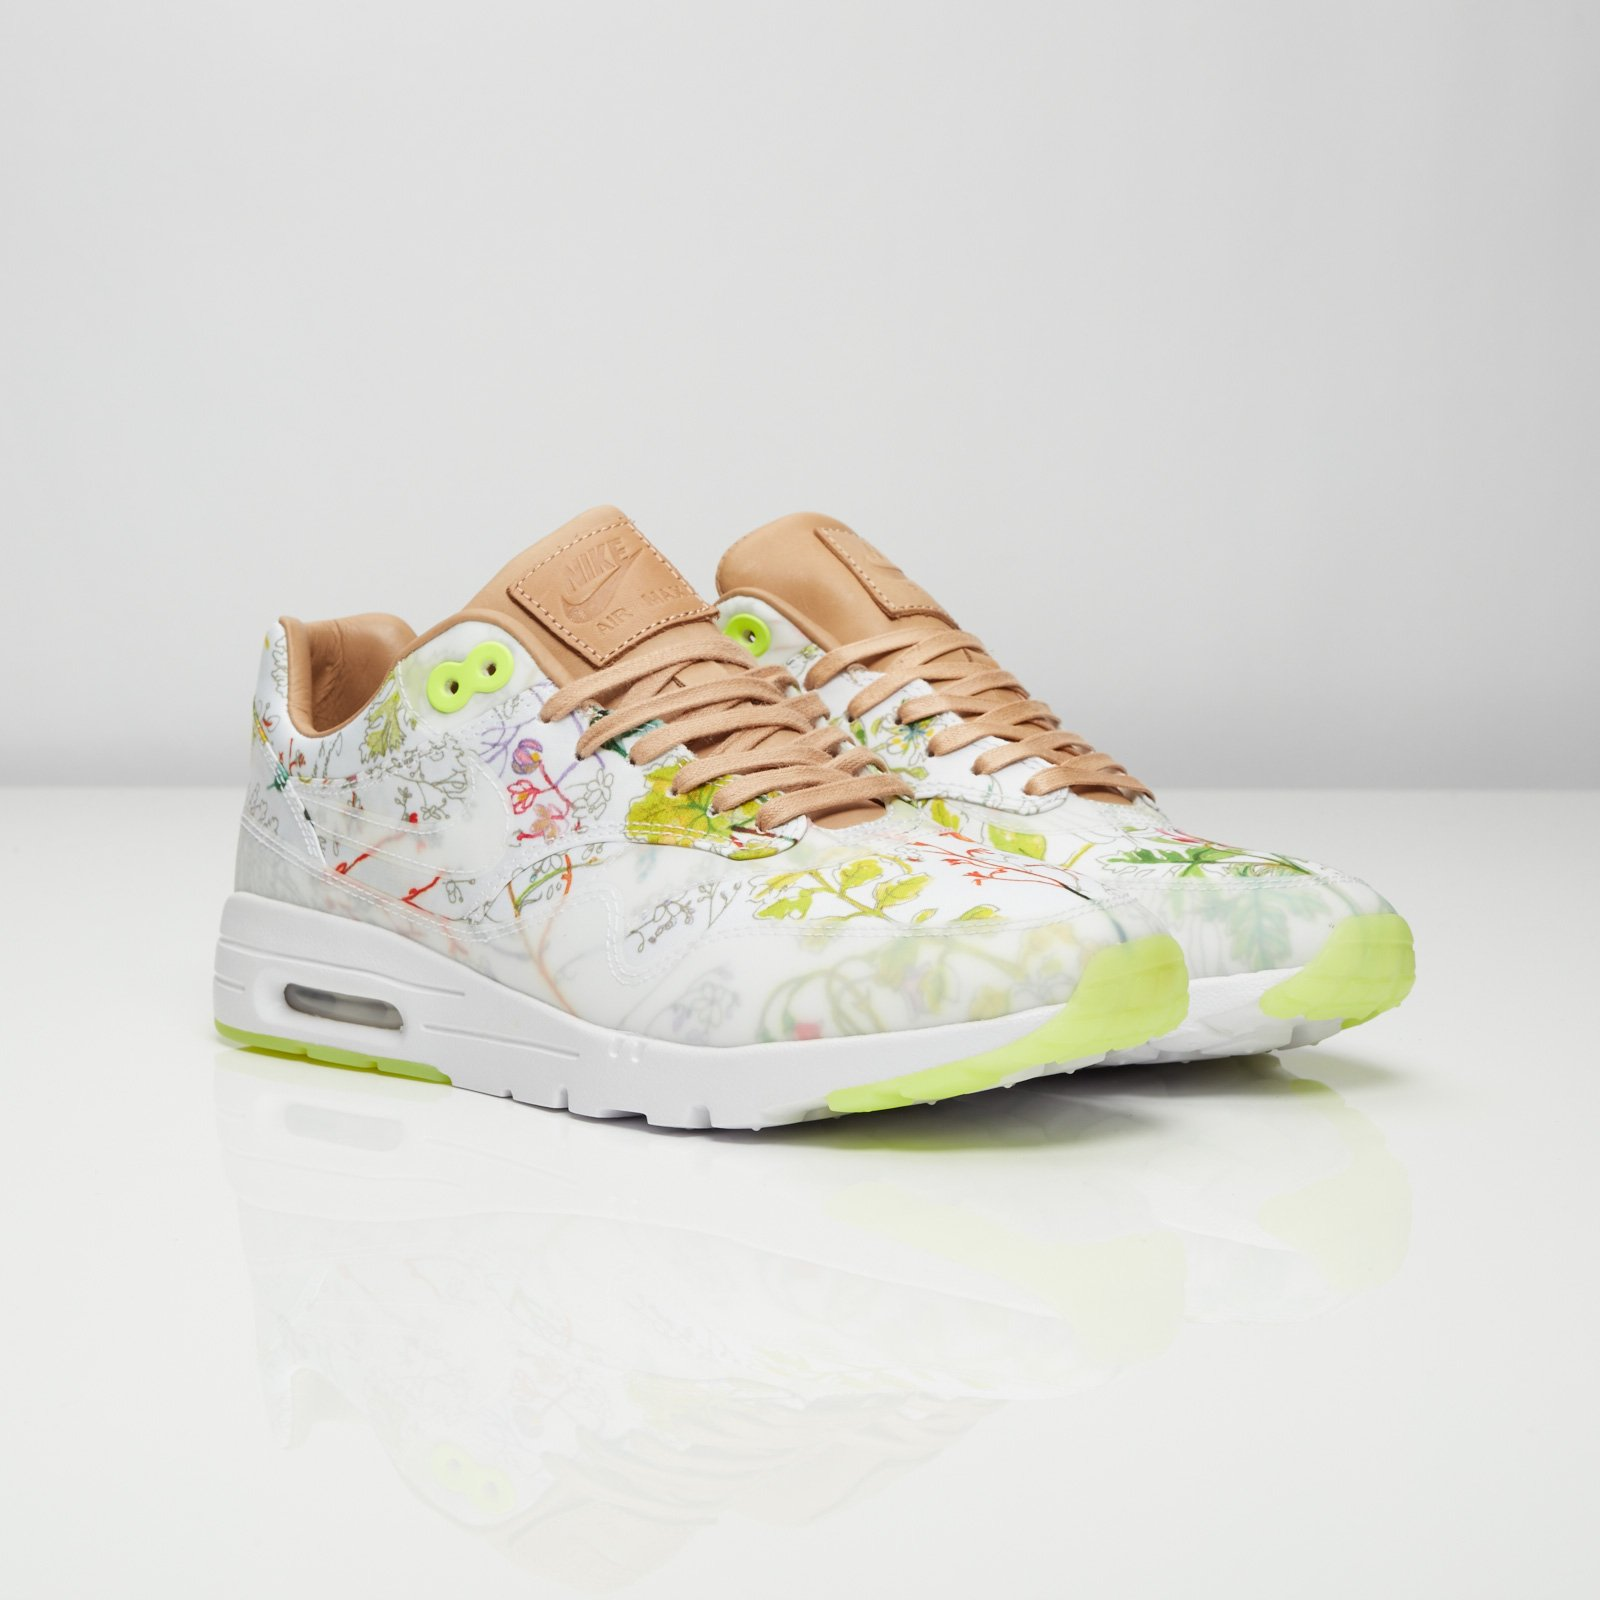 reputable site 72ebe 14e34 Nike Wmns Air Max 1 Ultra LIB QS